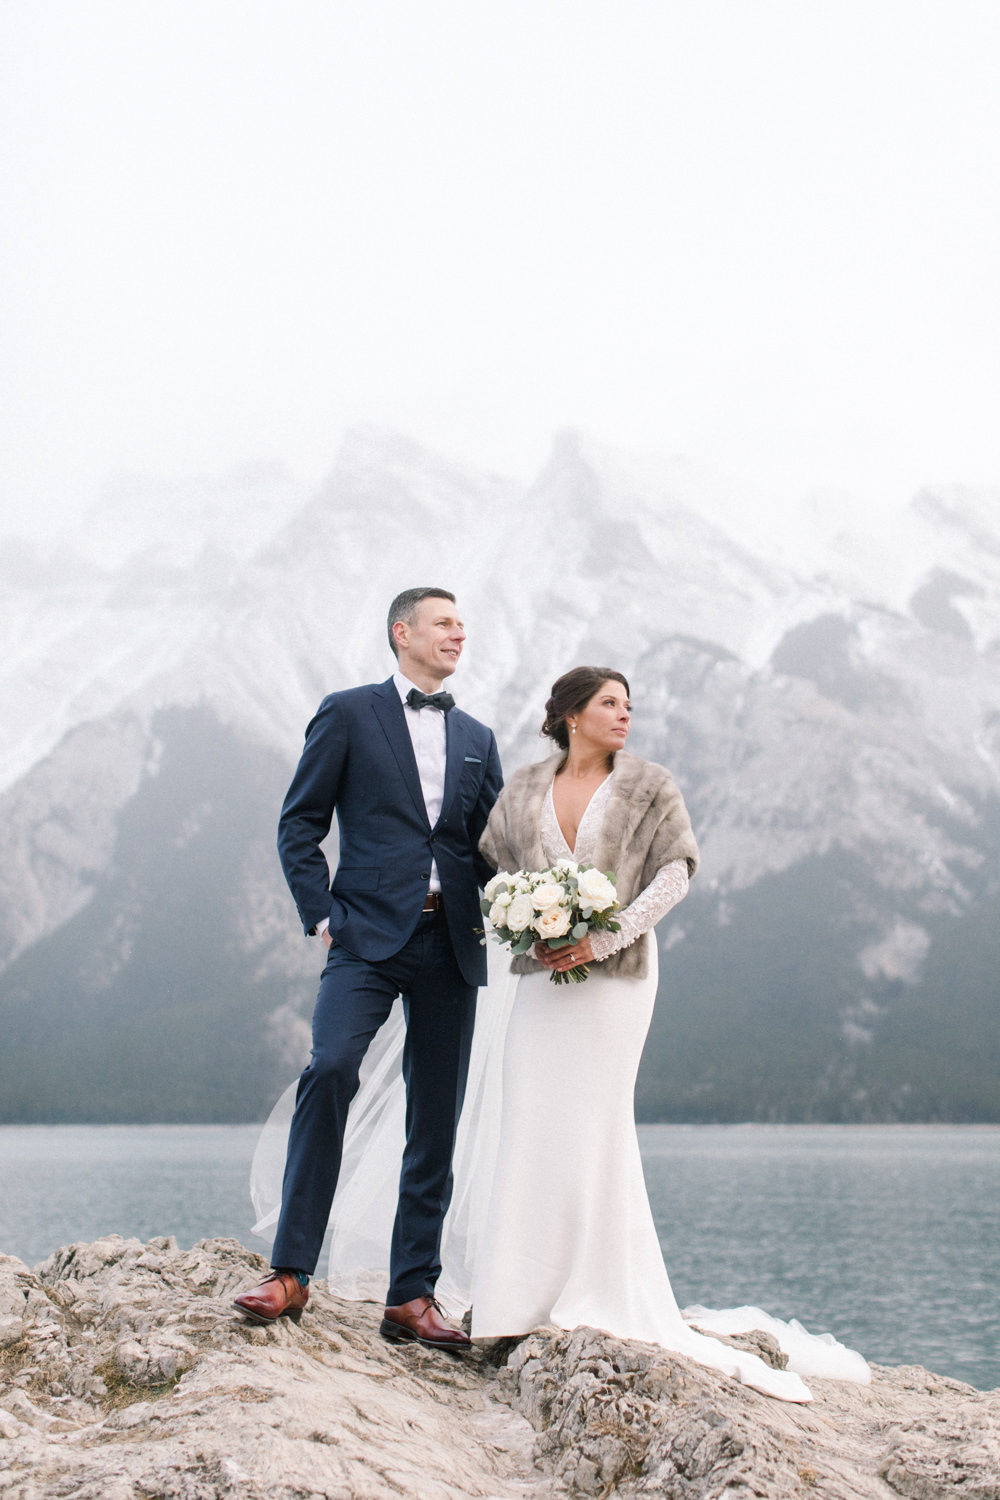 Torsten-and-Nina-at-Fairmont-banff-springs-Lynn-fletcher-weddings-60.jpg